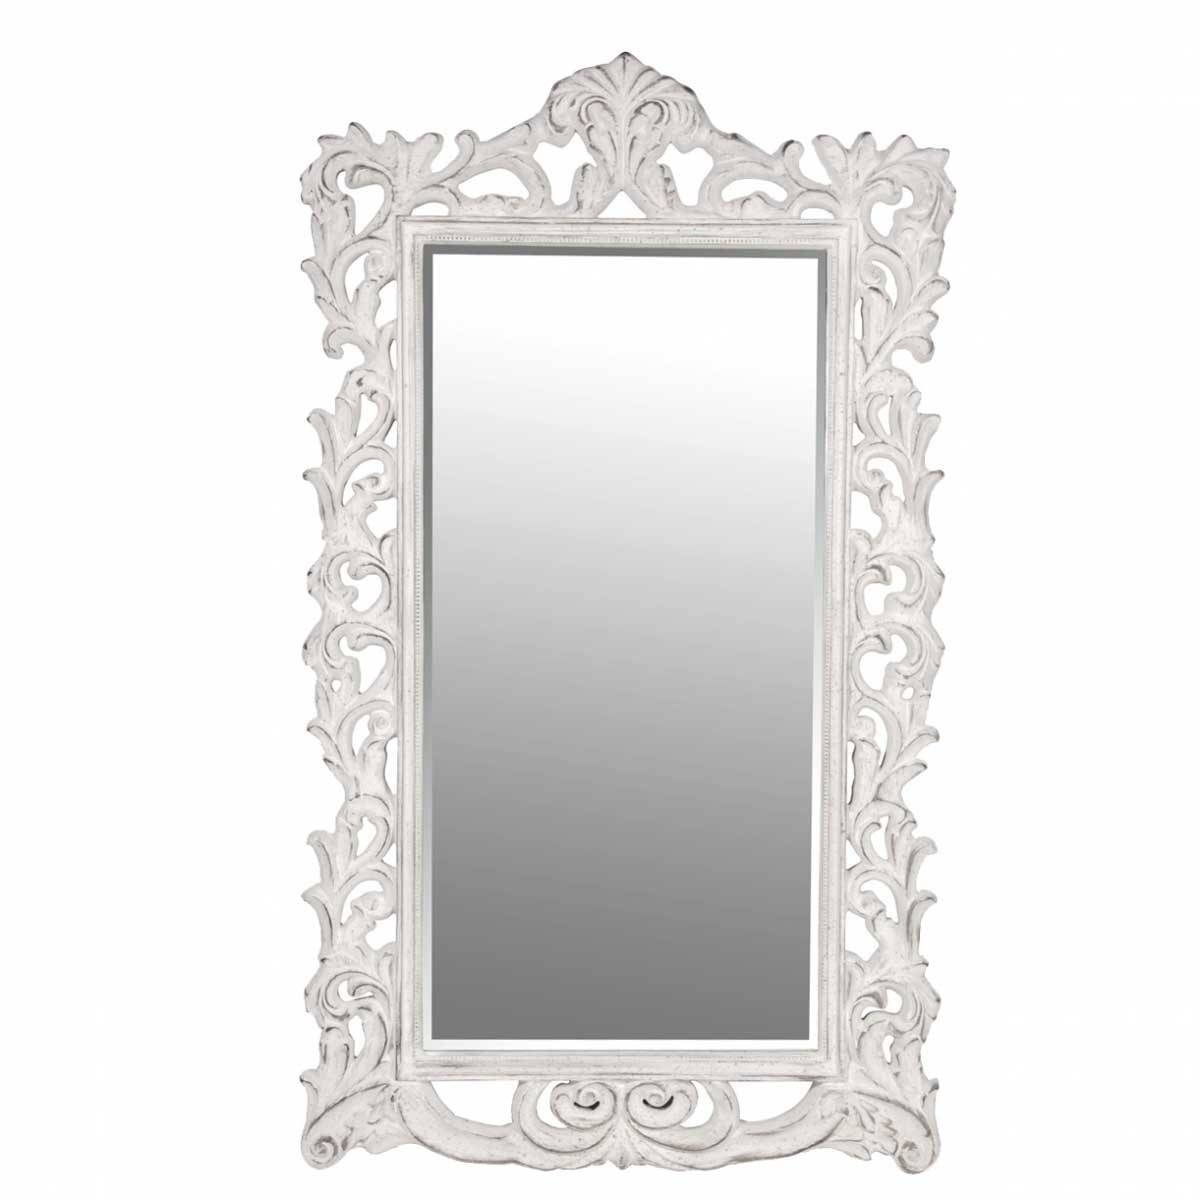 Isabelle Full Length Mirror | Luxury Mirror Intended For French Full Length Mirrors (View 23 of 25)